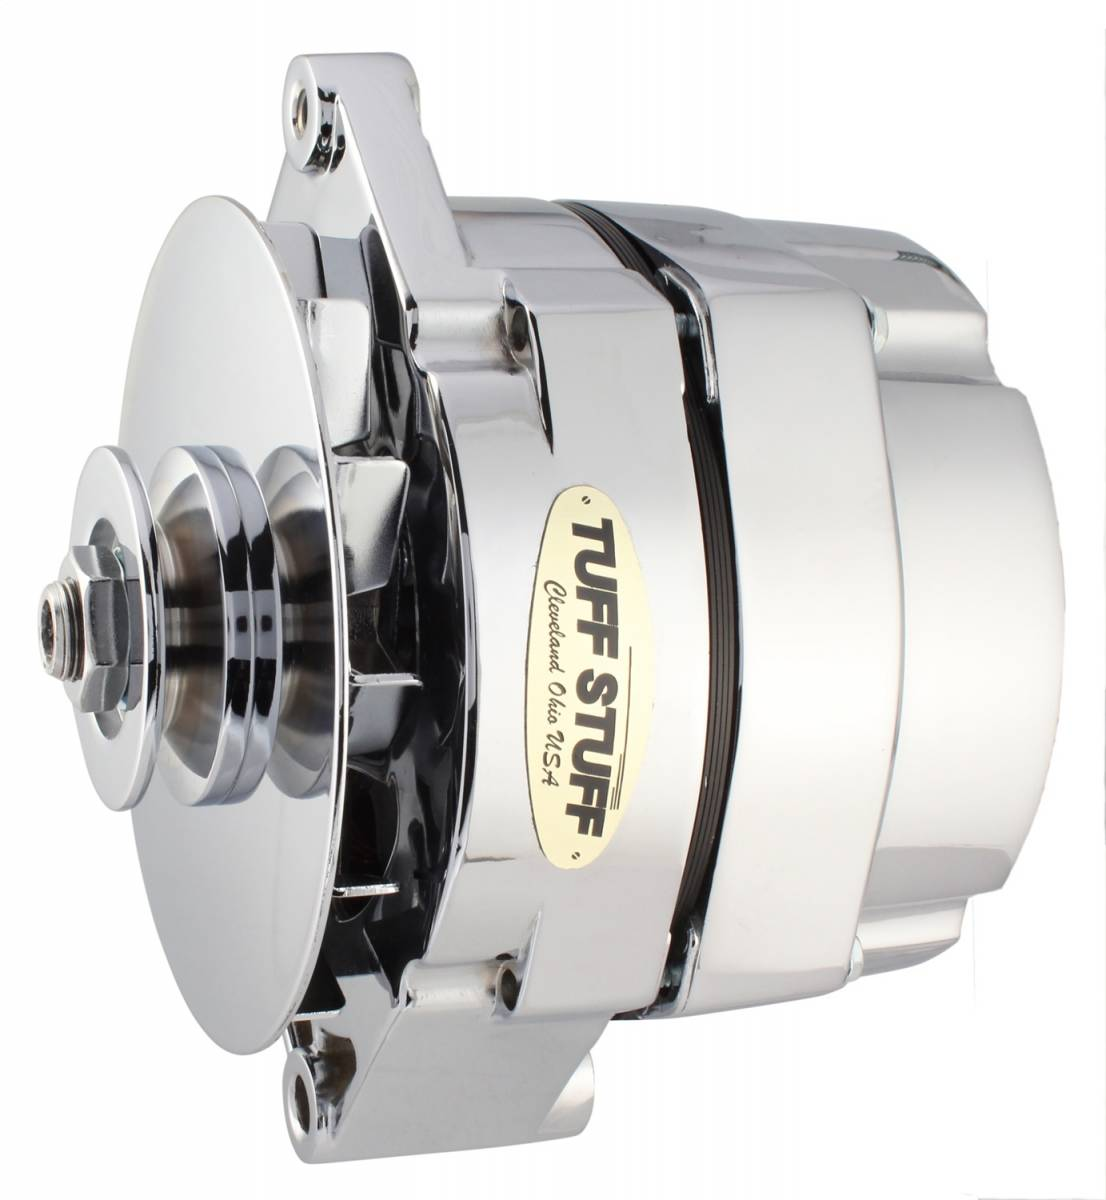 Tuff Stuff Performance - Alternator 100 AMP OEM Wire V Groove Pulley External Regulator Polished Must Be Used With An External Solid State Voltage Regulator 7102NCP